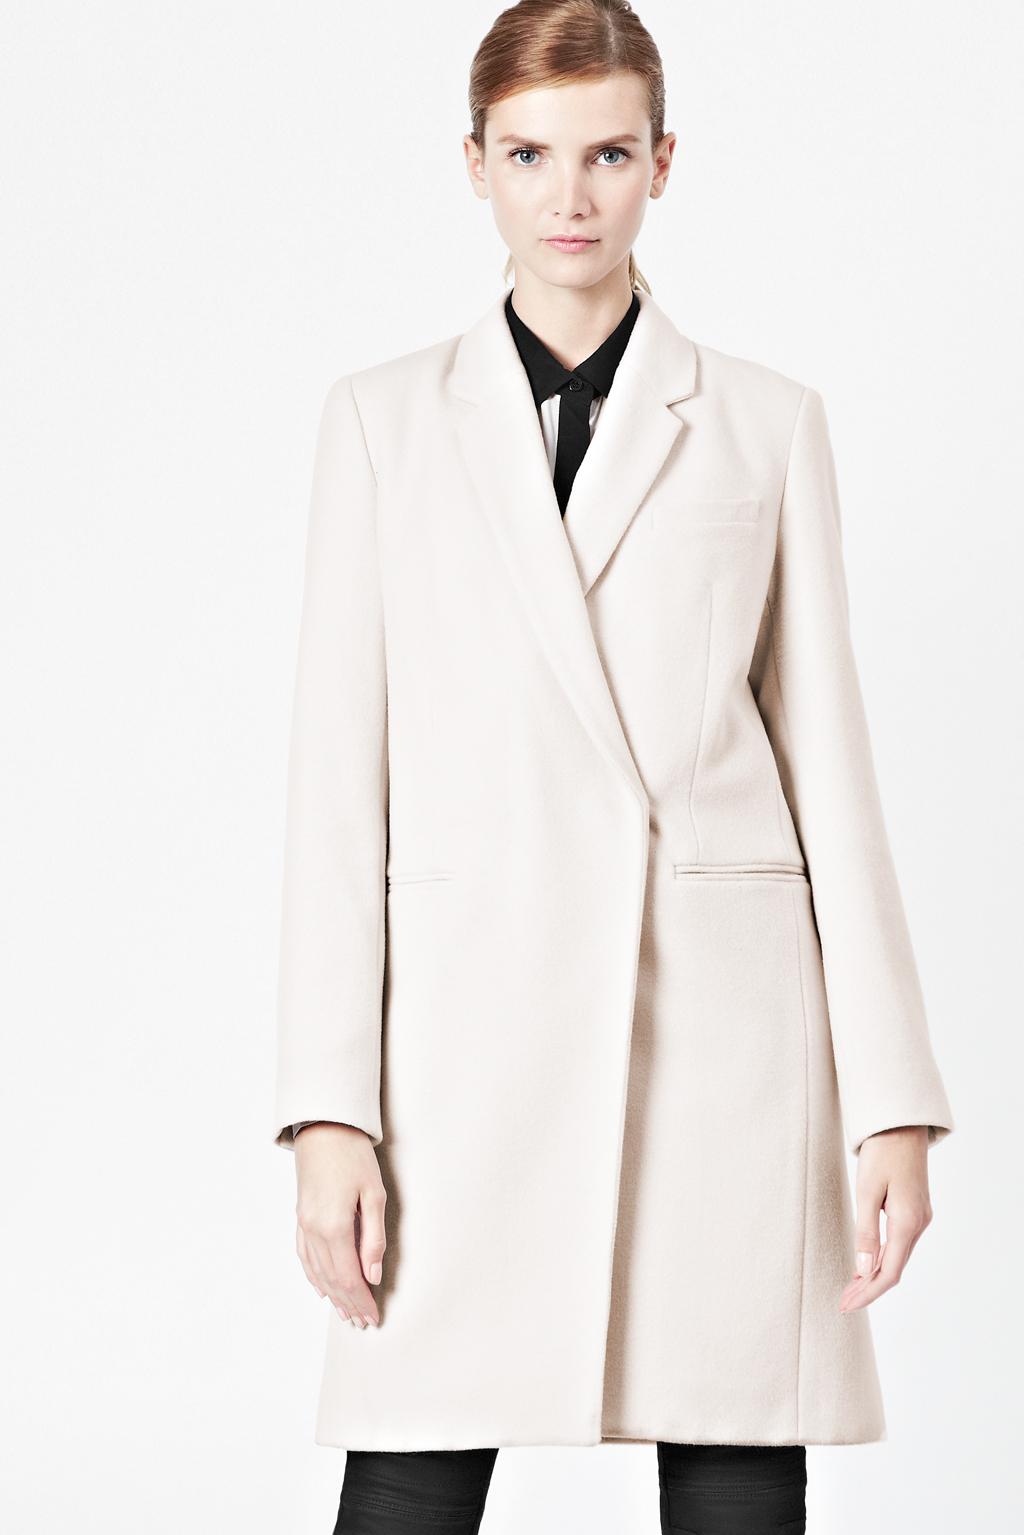 Evita Wool Classic Coat - Jackets & Coats - French Connection